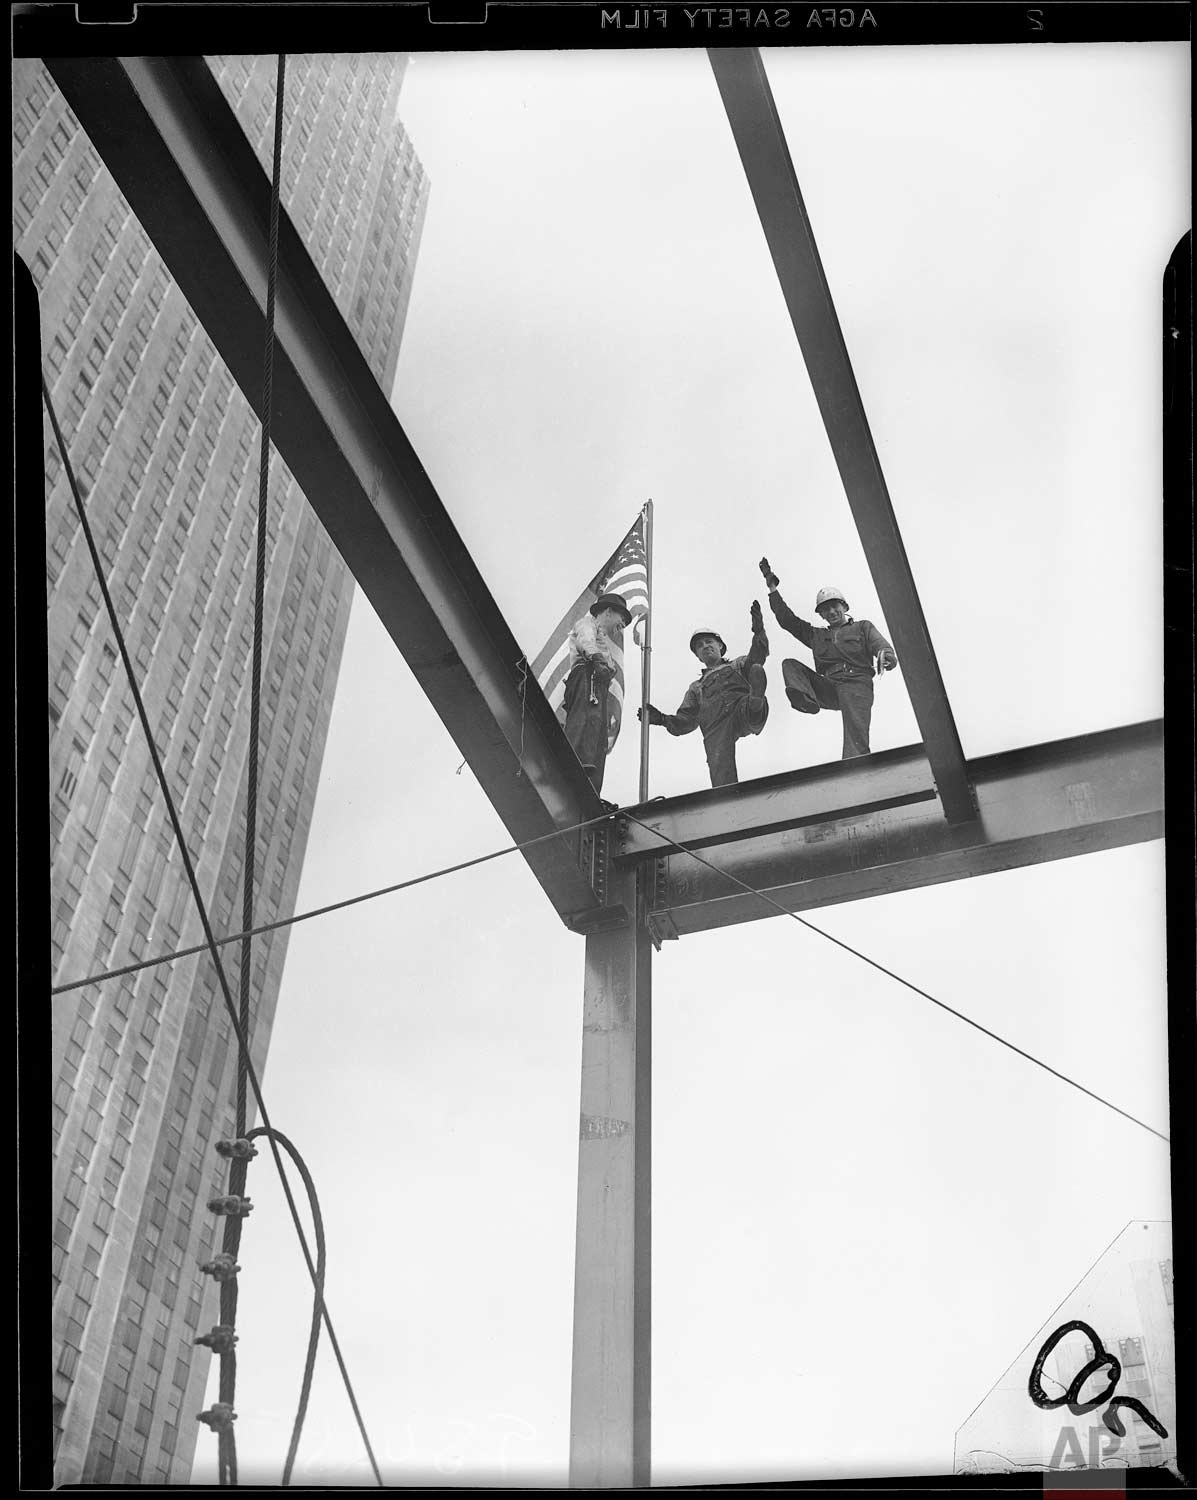 """A """"topping-out"""" ceremony - the raising of an American flag on the topmost girder - marked the completion of the steelwork on the 15-story new Associated Press building at Rockefeller Center, New York, June 16, 1938. (AP Photo/Corporate Archives/Joseph W. Brady)"""